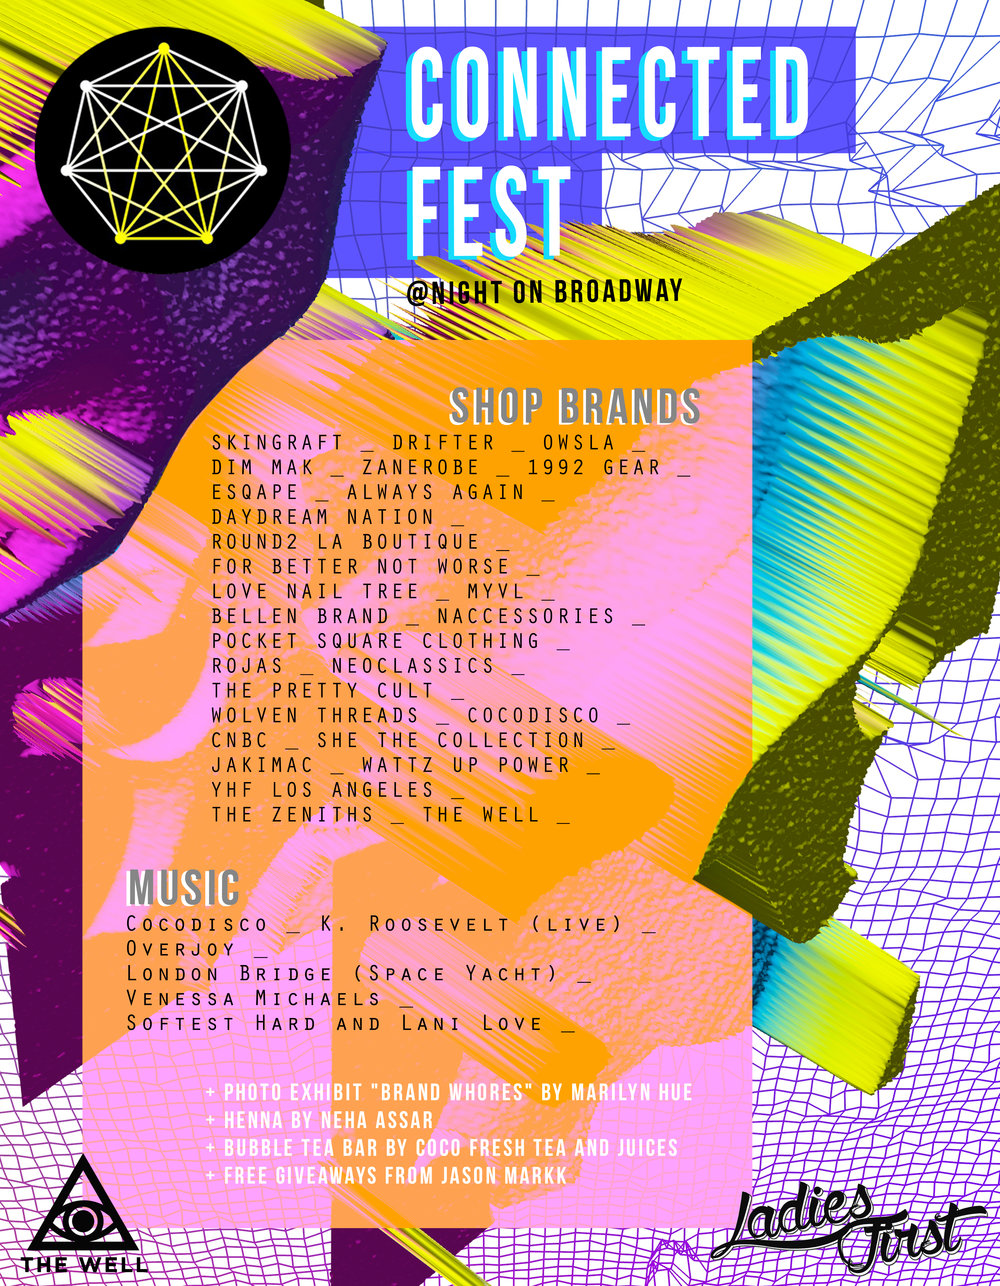 CONNECTED FEST